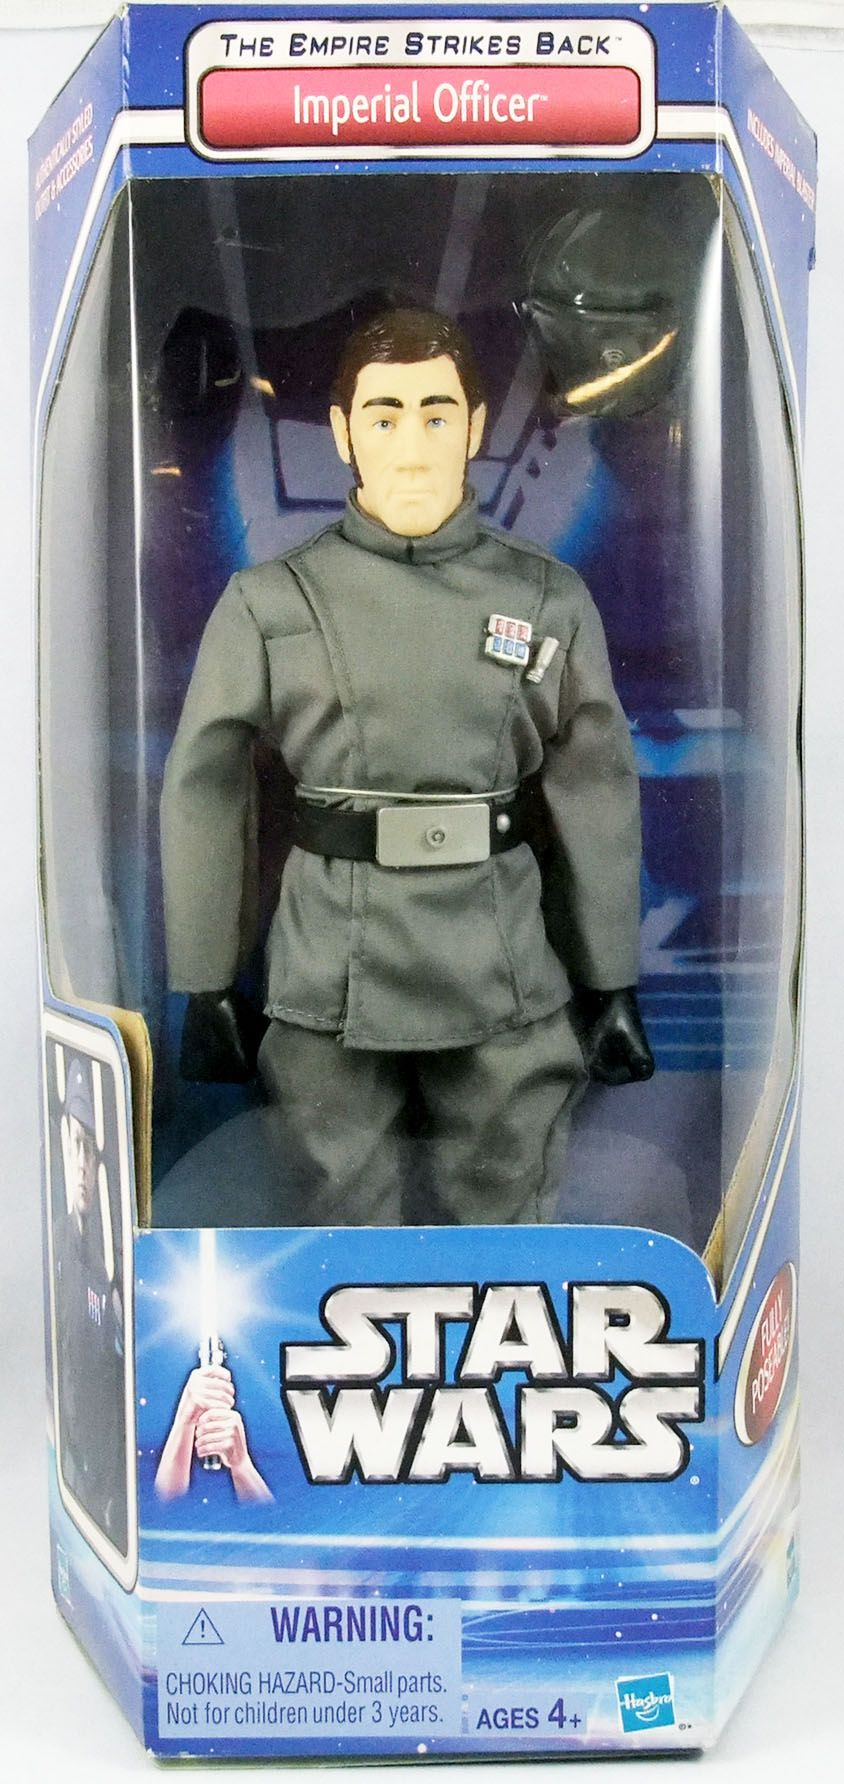 Star Wars Action Collection - Hasbro - Imperial Officer